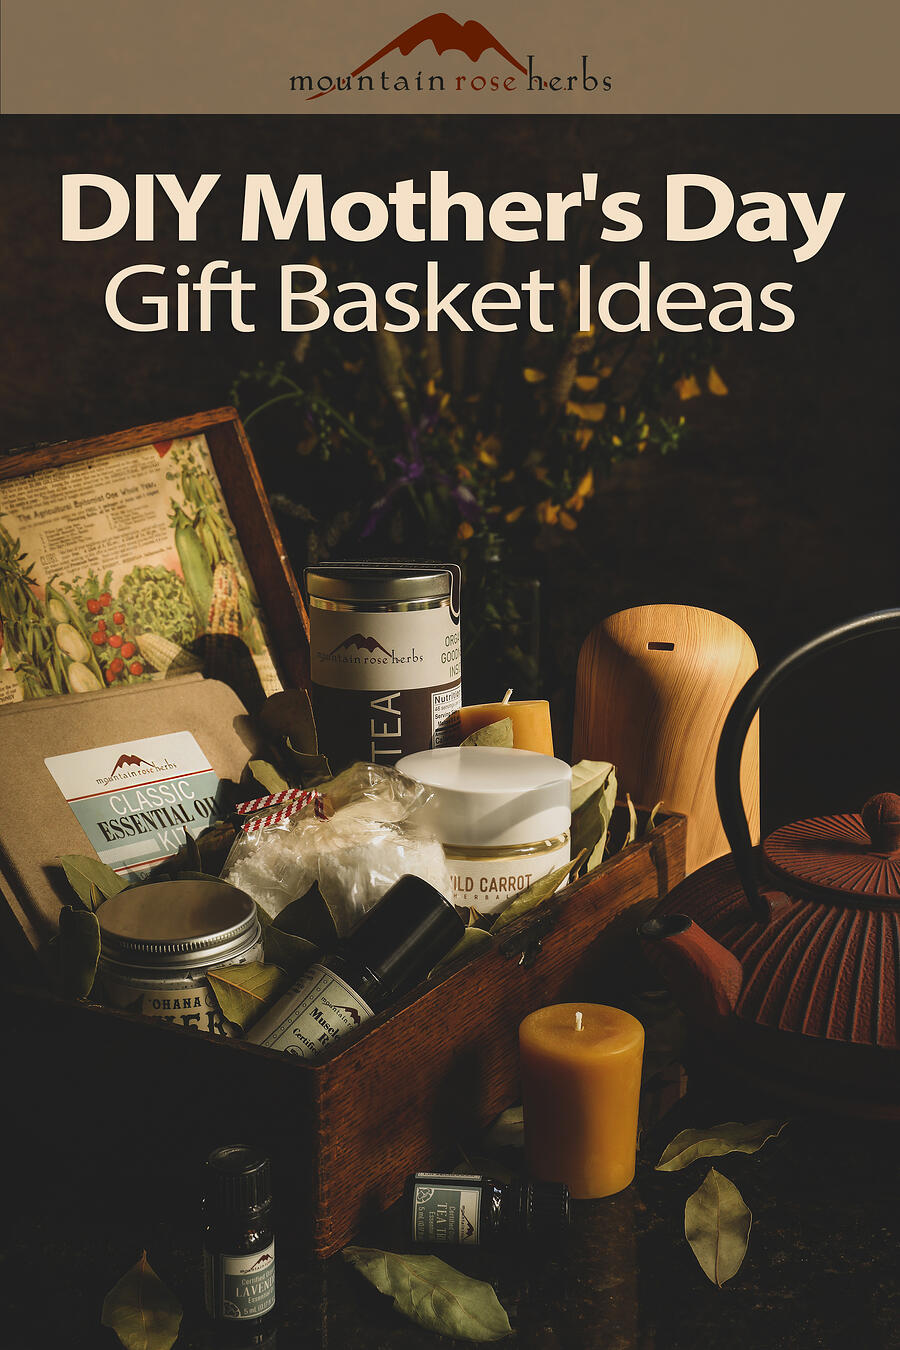 Mother's Day Self Care Gift Basket Ideas Pinterest pin for Mountain Rose Herbs